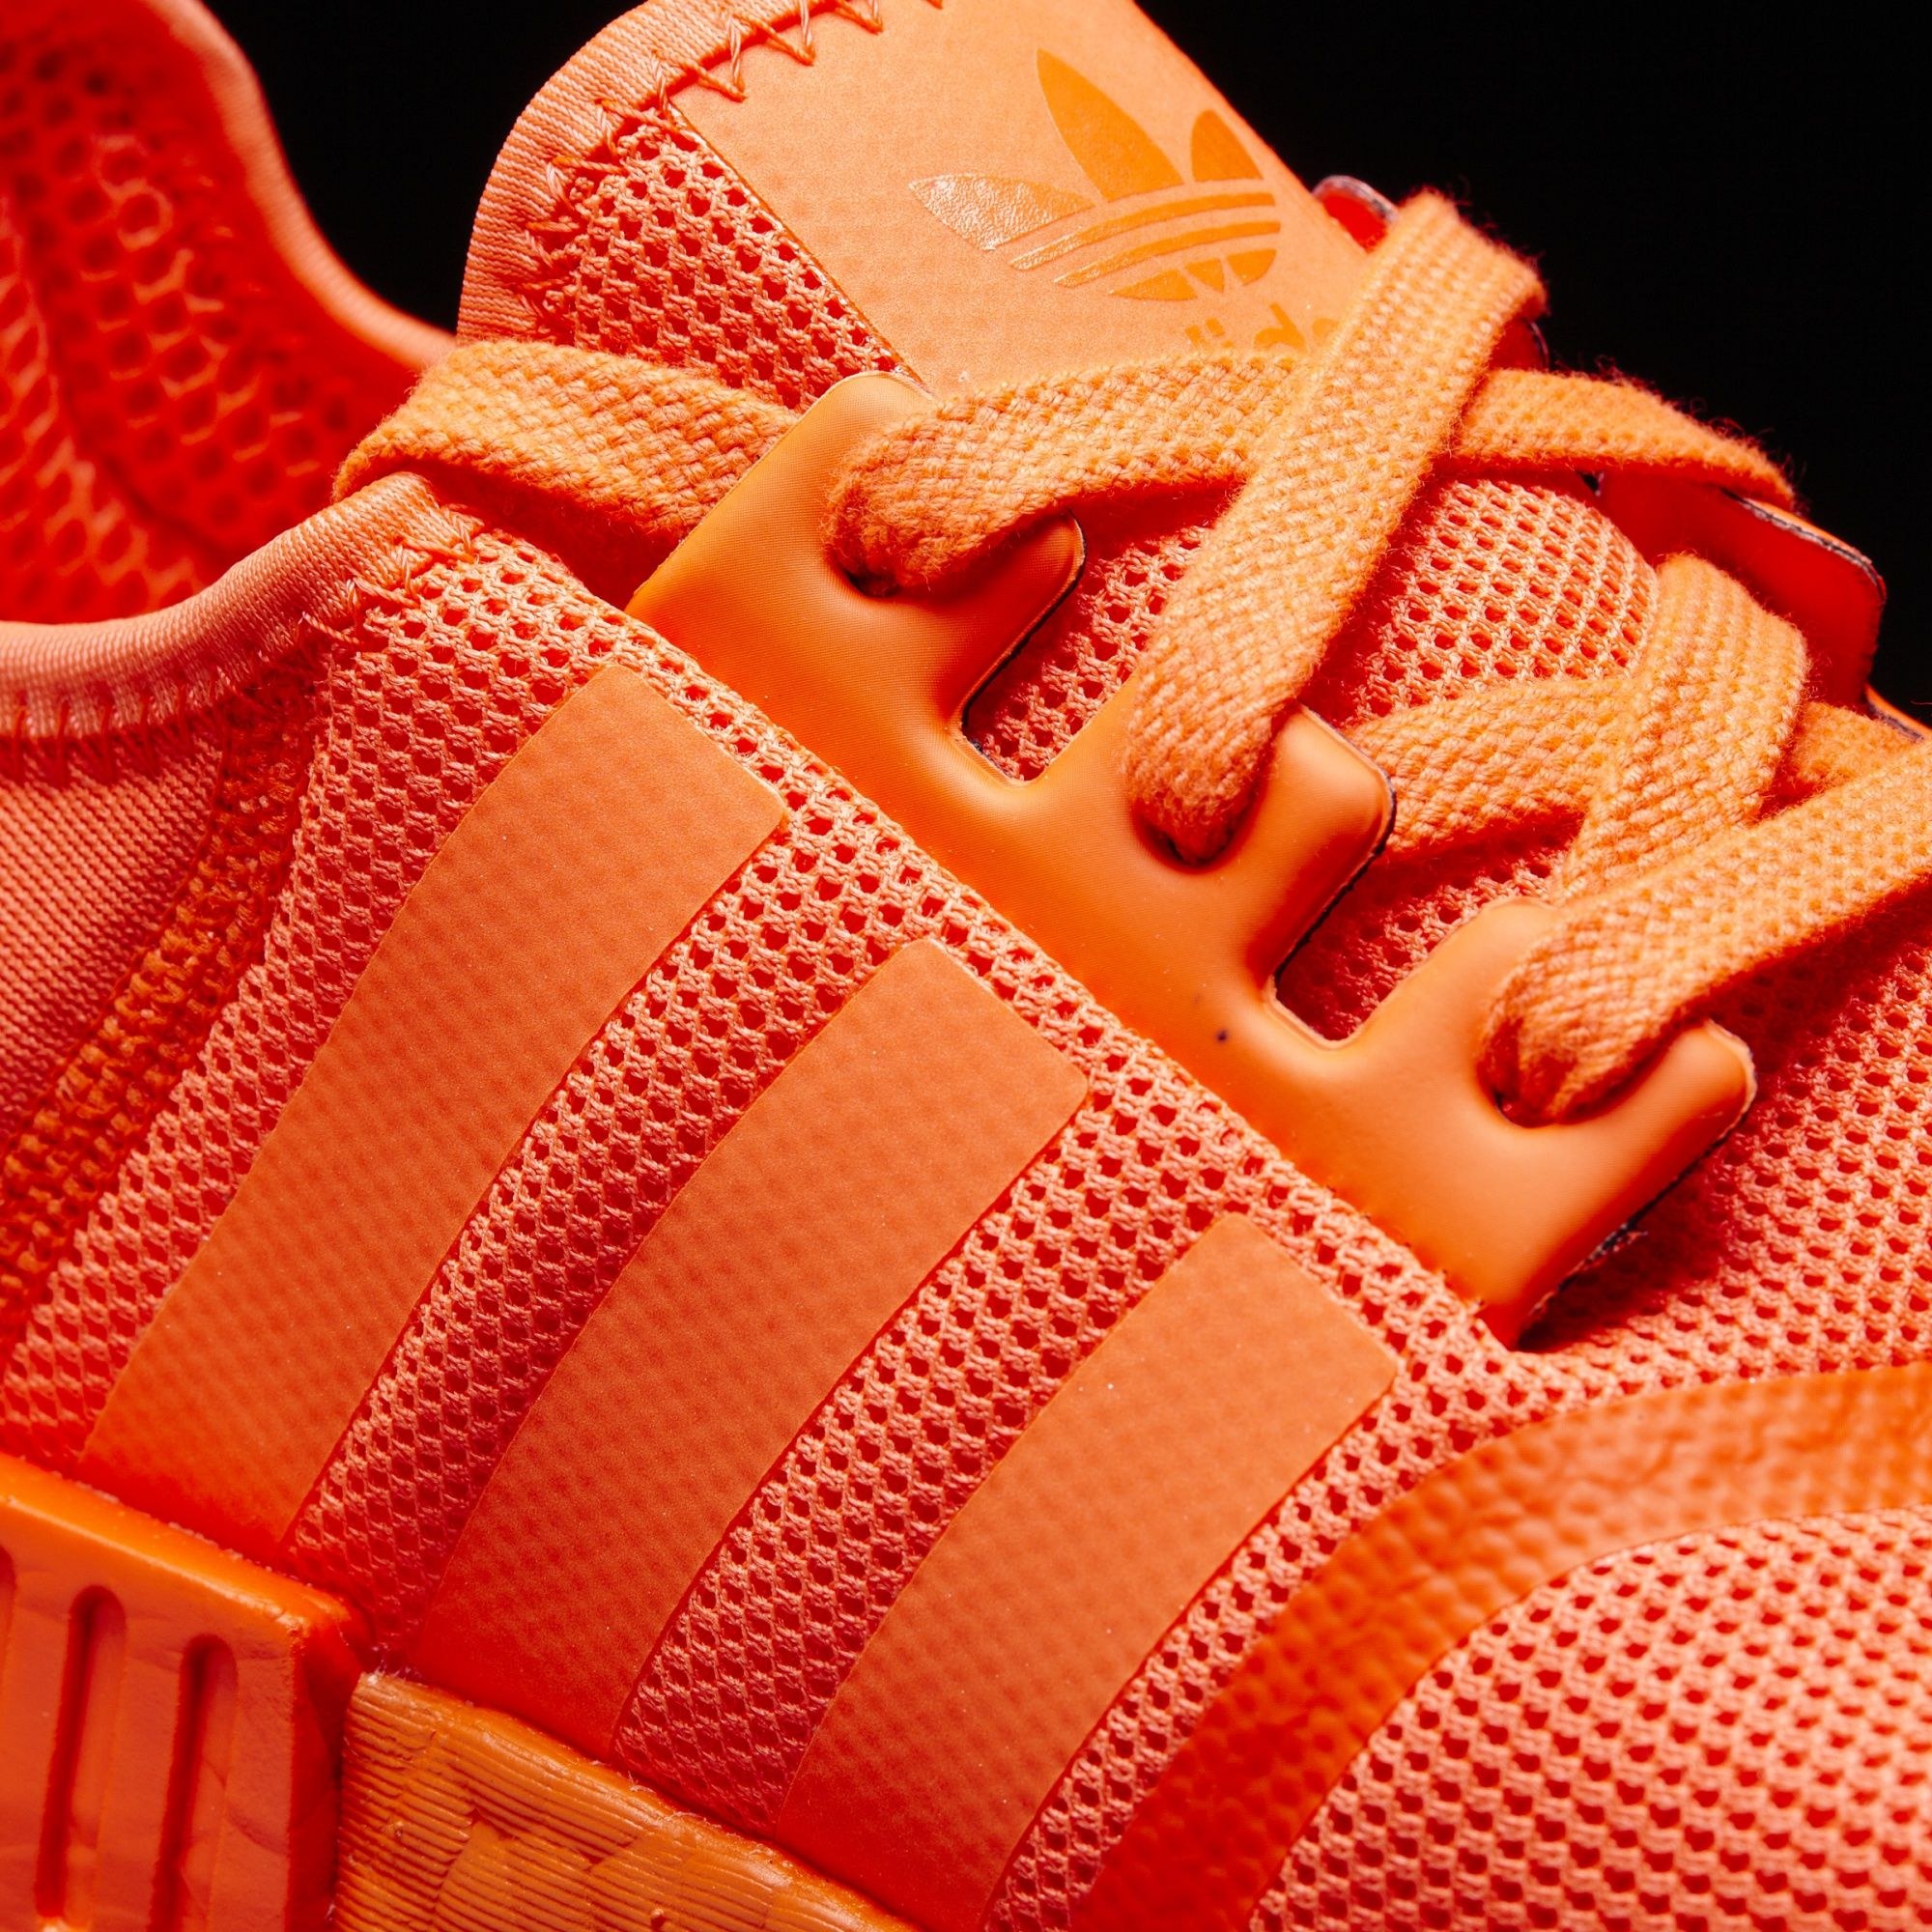 adidas-nmd-r1-s31507-release-20160917